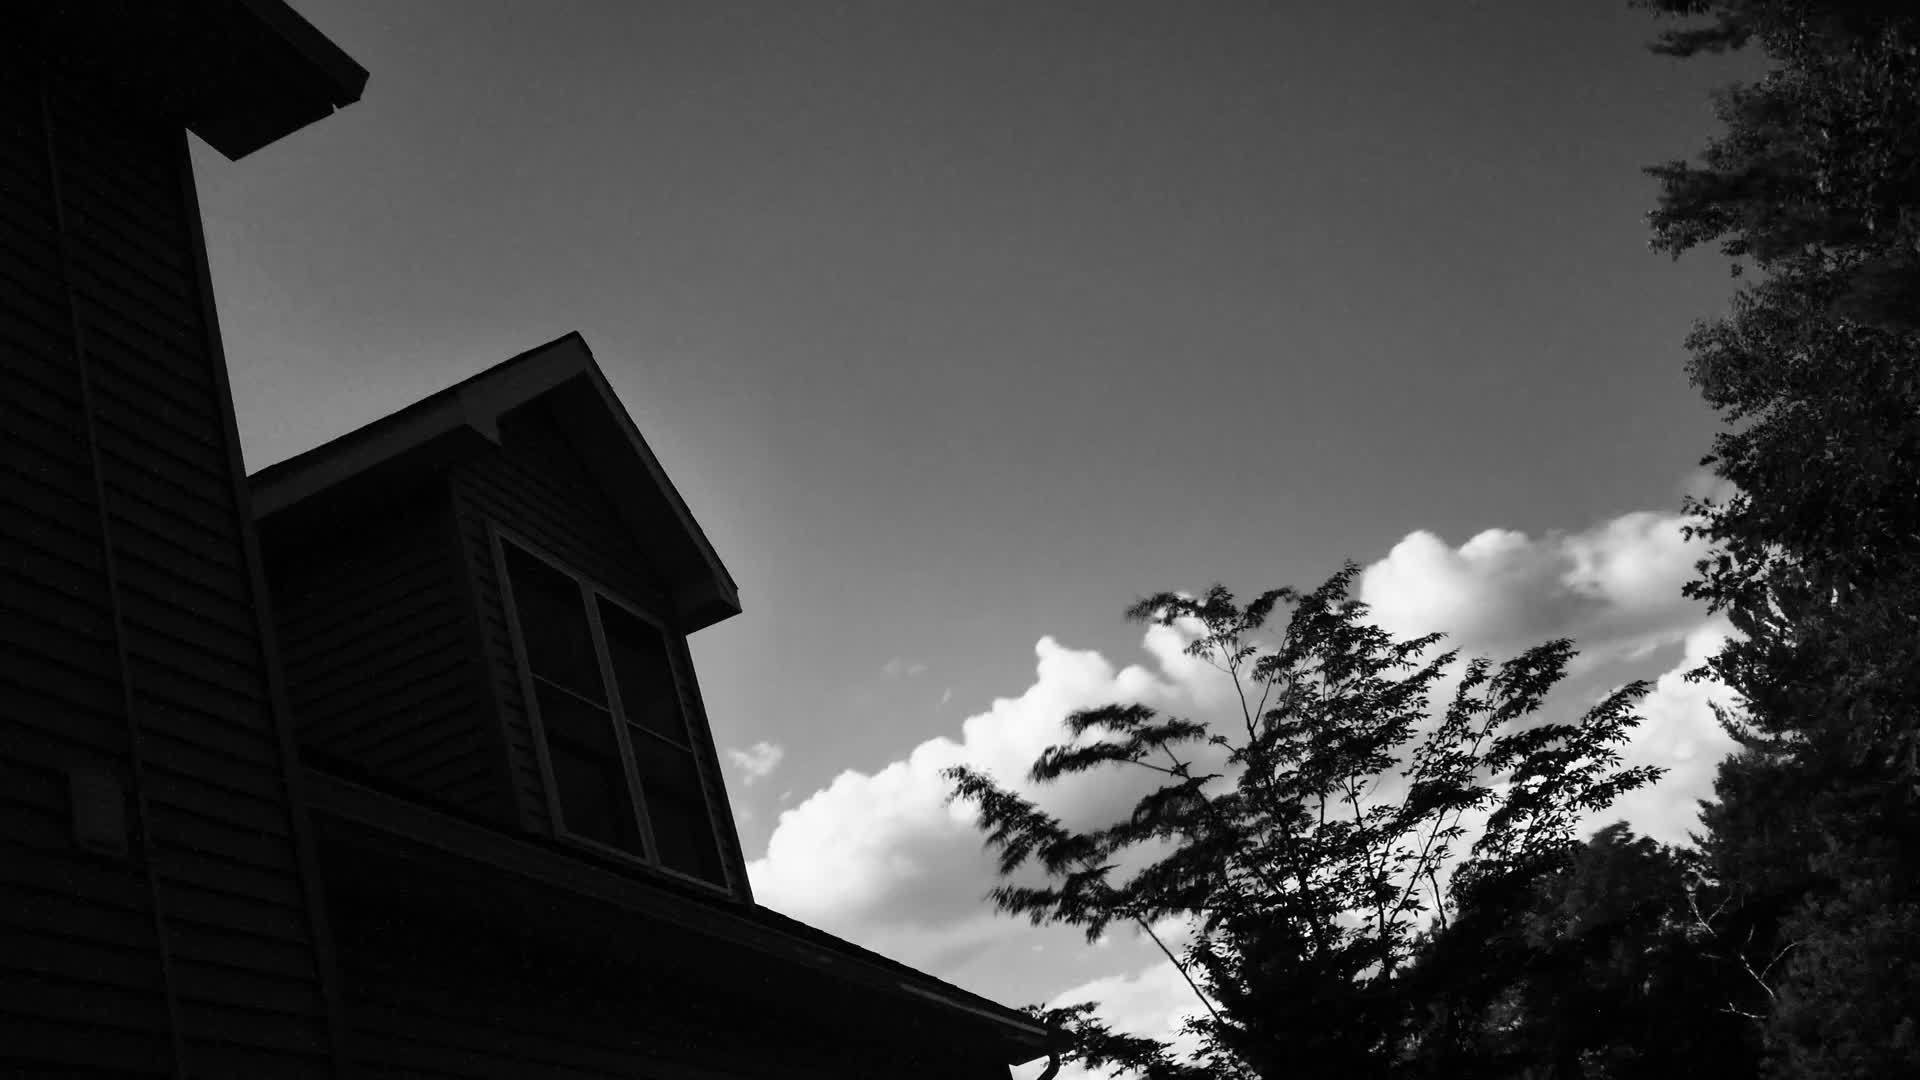 house, Clouds GIFs